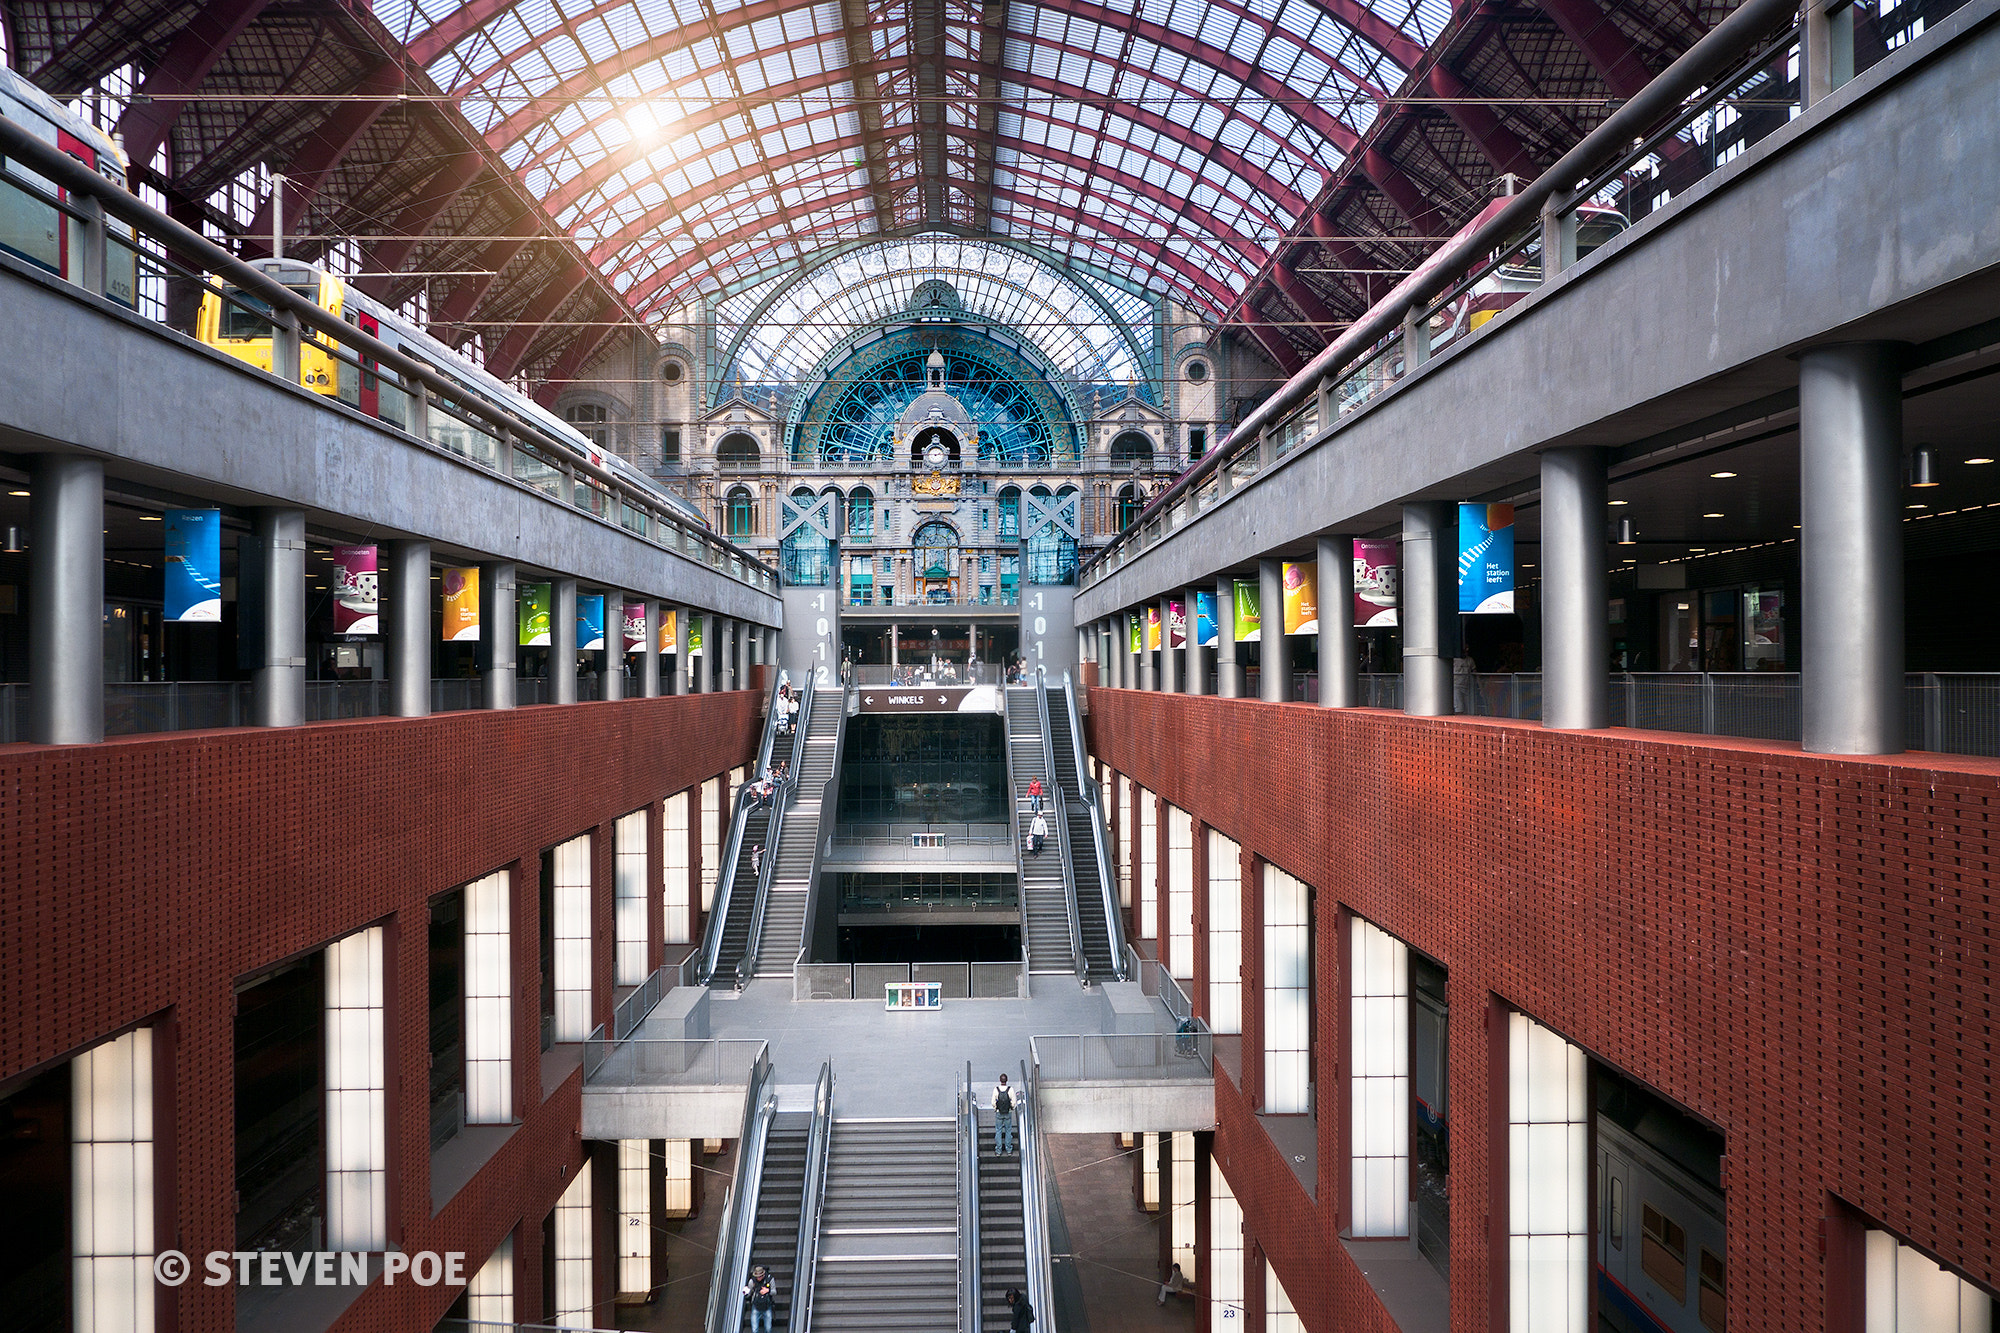 Photograph Antwerpen Station by Steven Poe on 500px